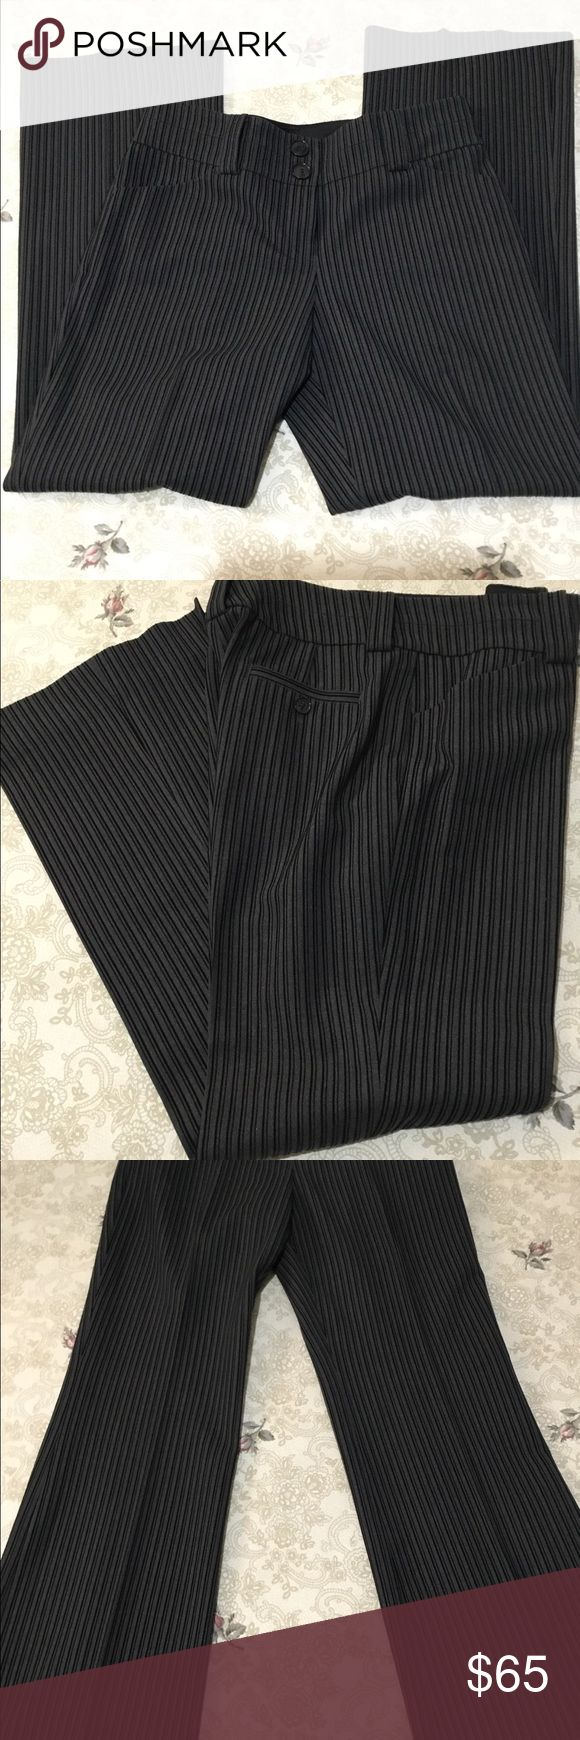 """Per Se Designer Career Trousers Very high end designer trousers designed to go from day to evening. You can't find these in retail stores, only direct sales by Fashion Consultants and trunk shows. Per Se uses the same fabric mills as Chanel, Ungara and Valentino. It was interesting trying to research this brand. It's part of Carlisle and they have showrooms in NYC and Greenwich Ct. Pants run from $265 to $425. These are beautiful. Approximate measurements 32"""" waist, 29"""" Inseam, 39""""…"""